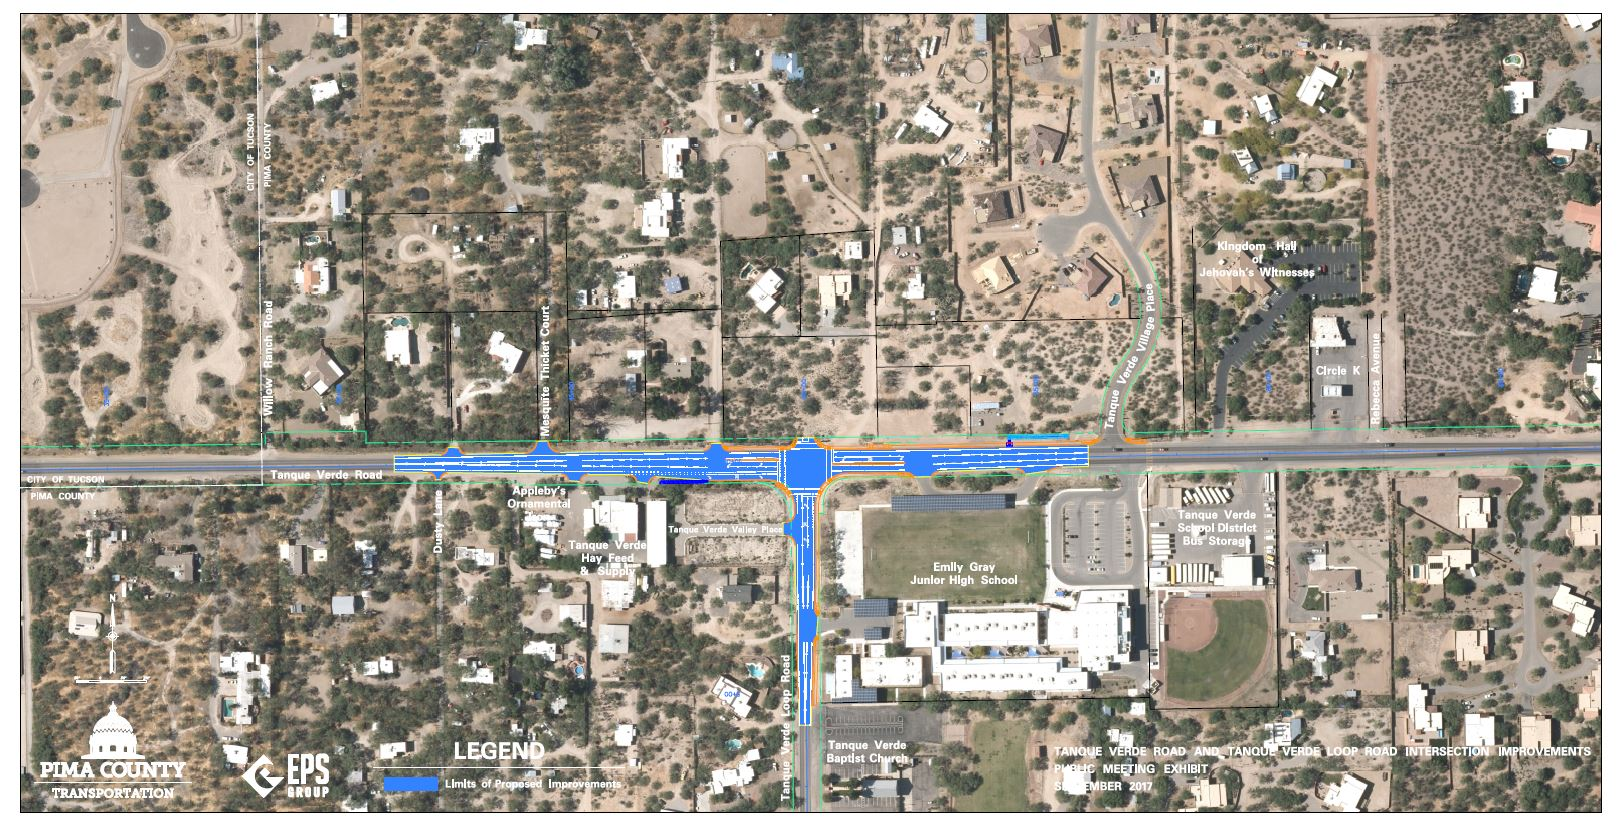 Tanque Verde - Tanque Verde Loop Rd Intersection map